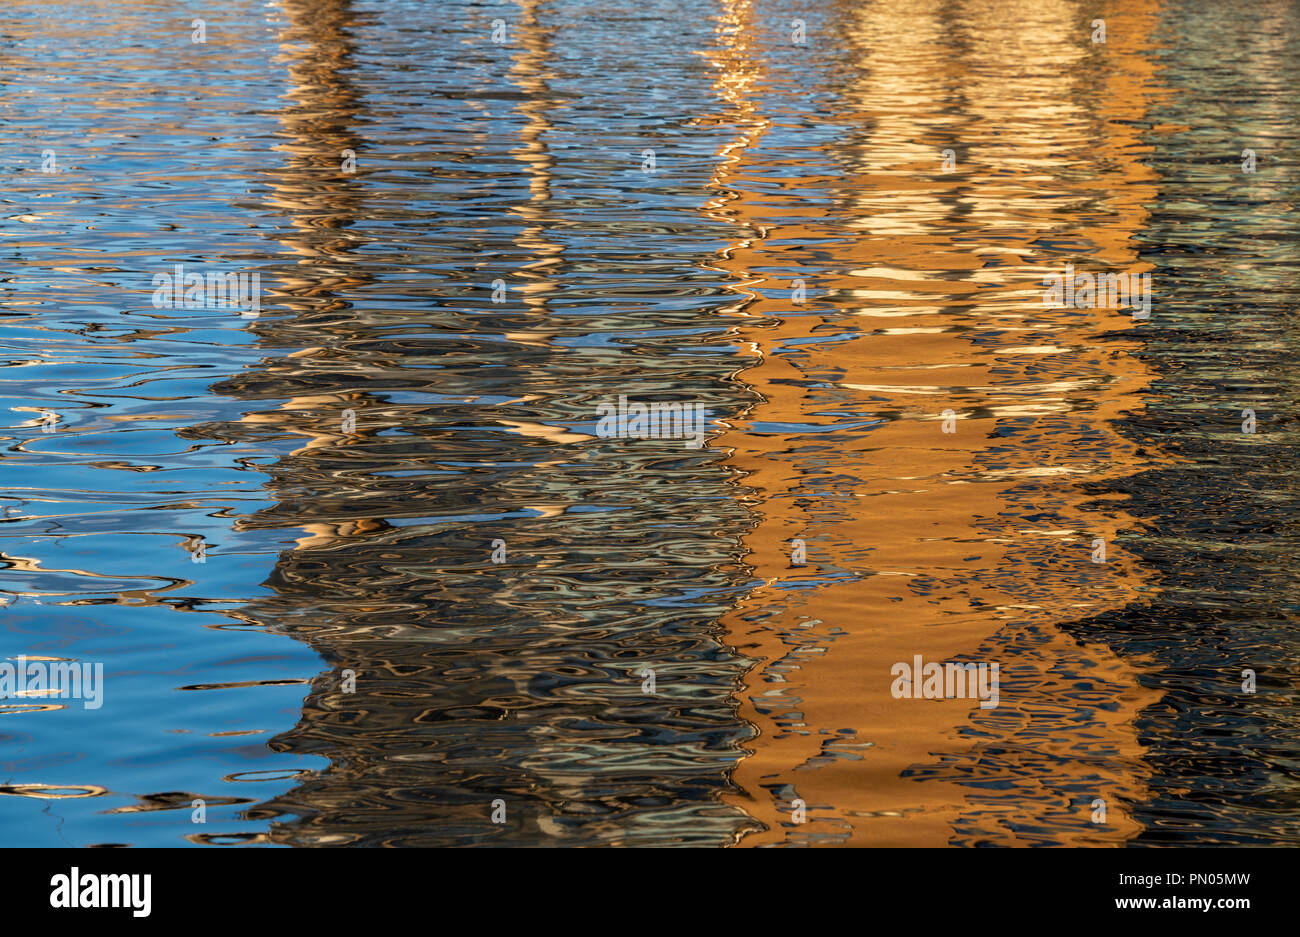 Colourful reflections in water in Stavanger, Norway. Ideal for a background image. - Stock Image